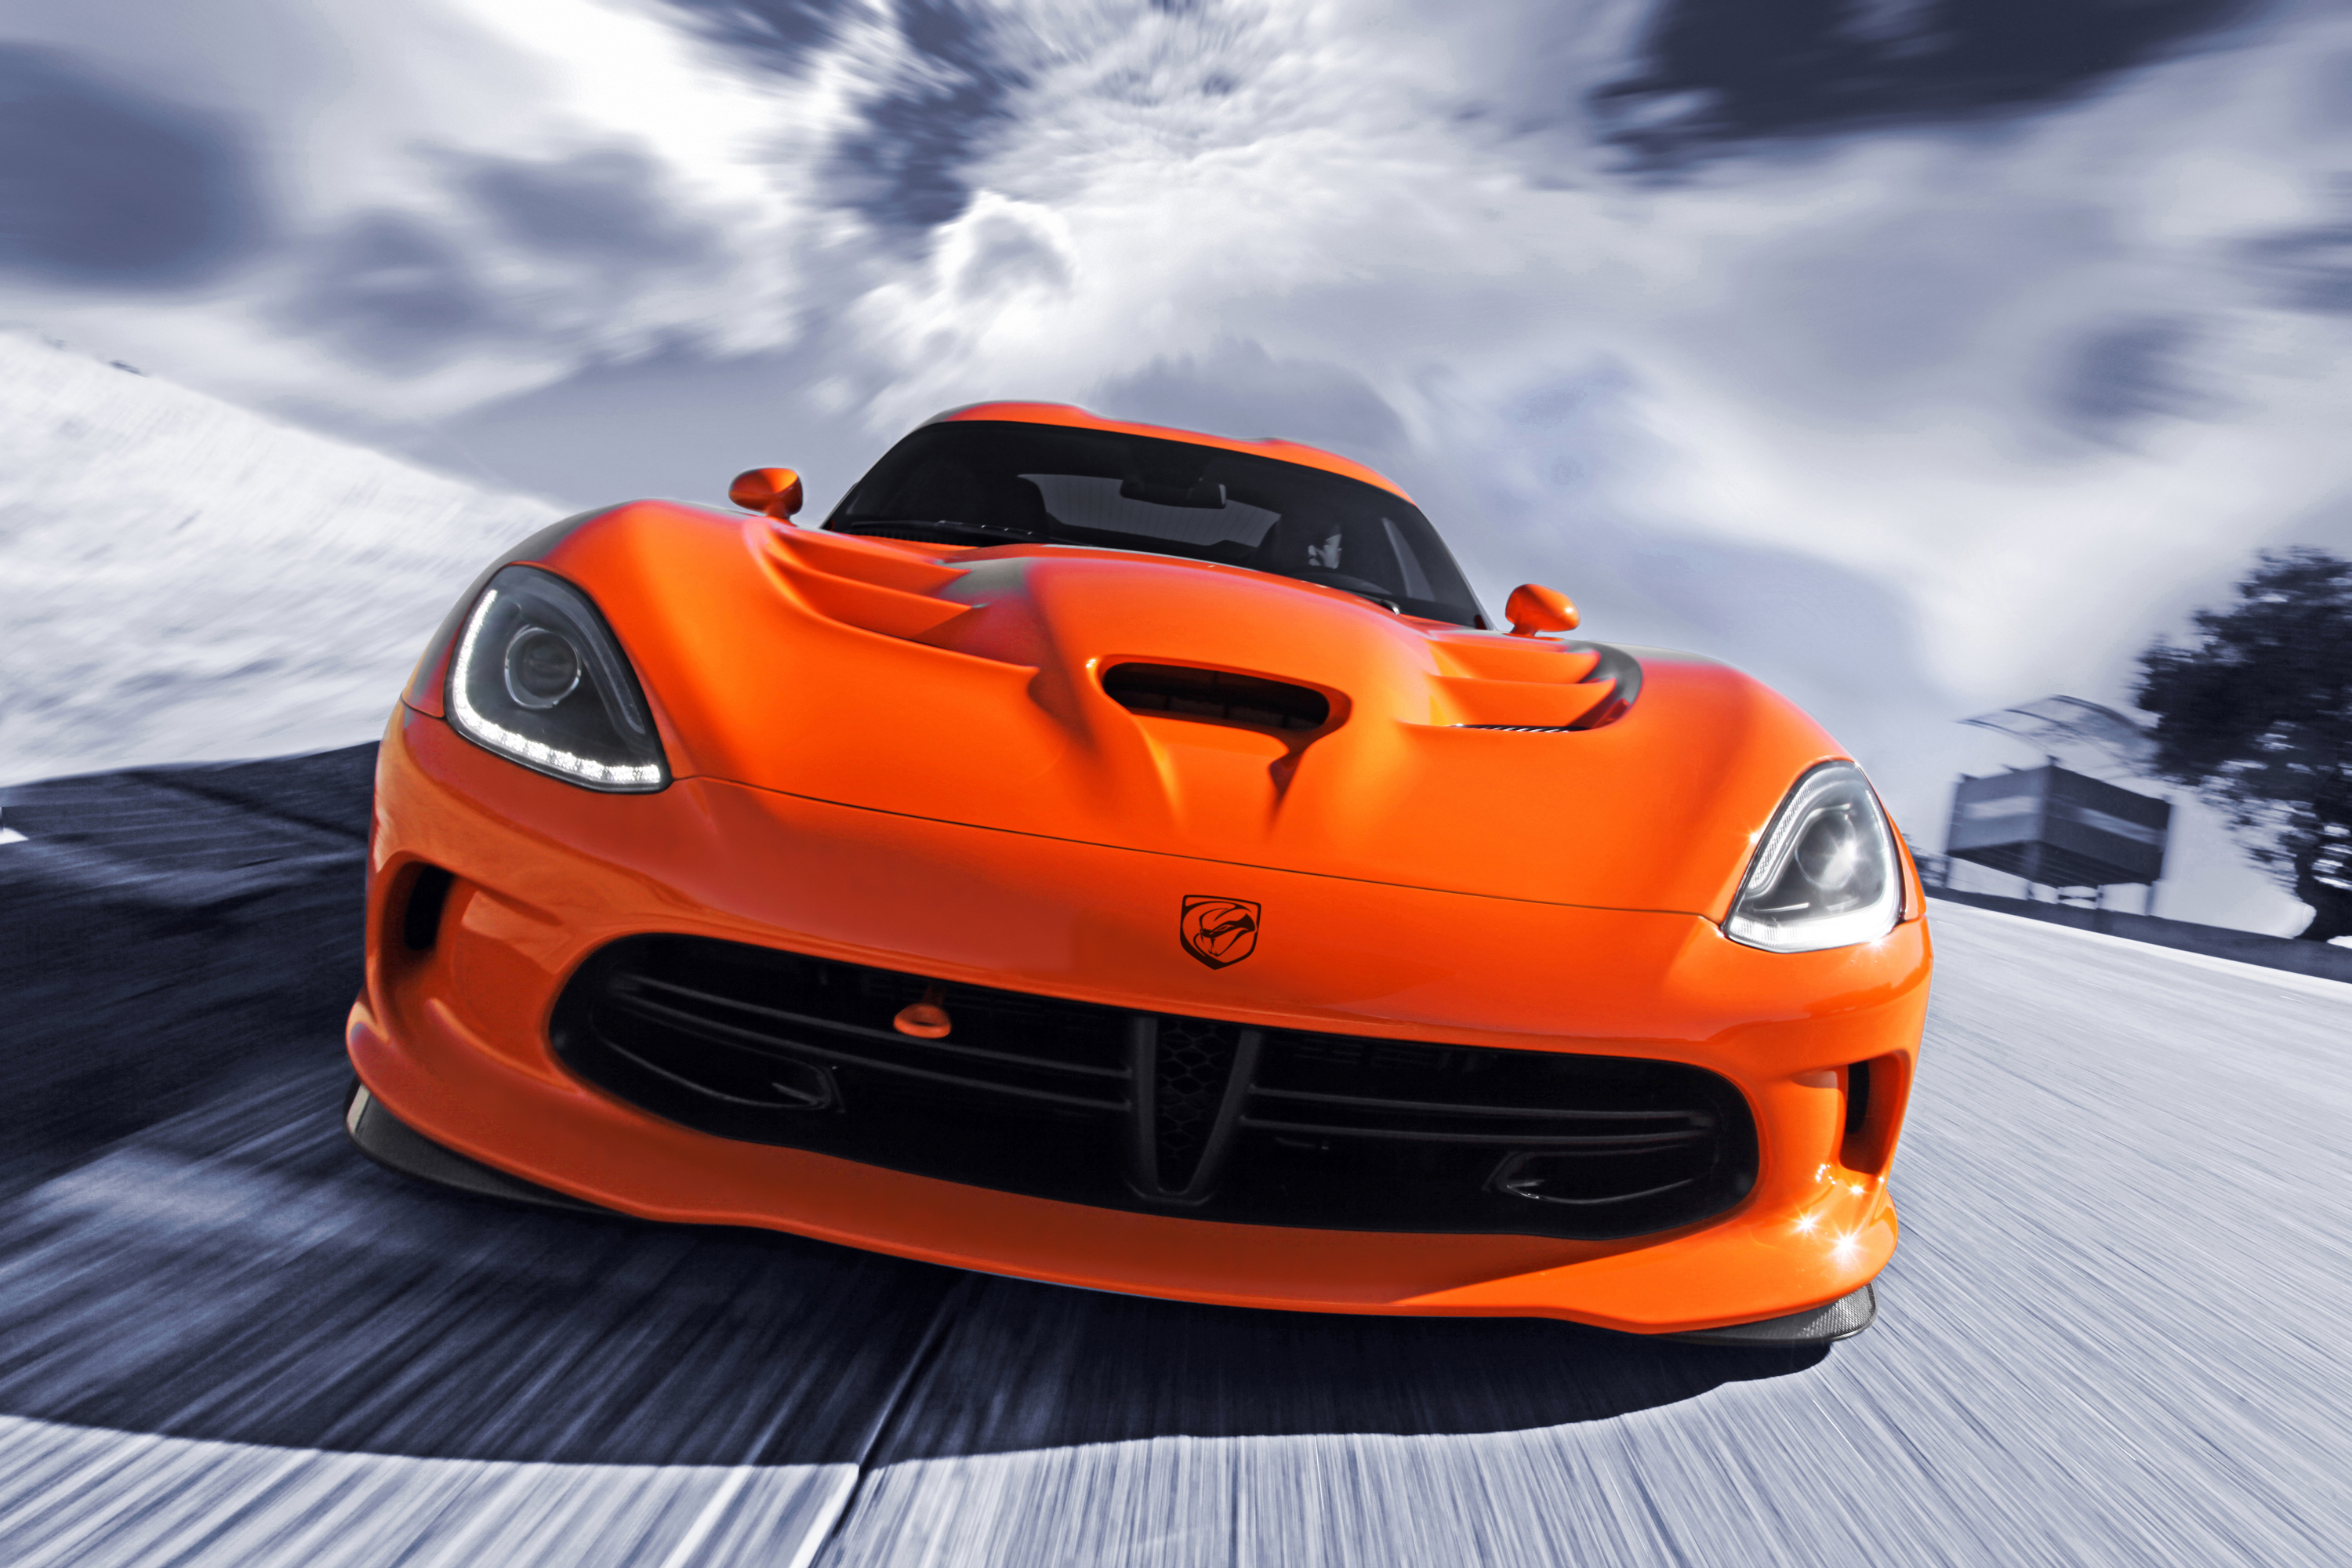 Snake Bit: Dodge Viper Production Halted – Vipers Will Not Race At Le Mans In 2014